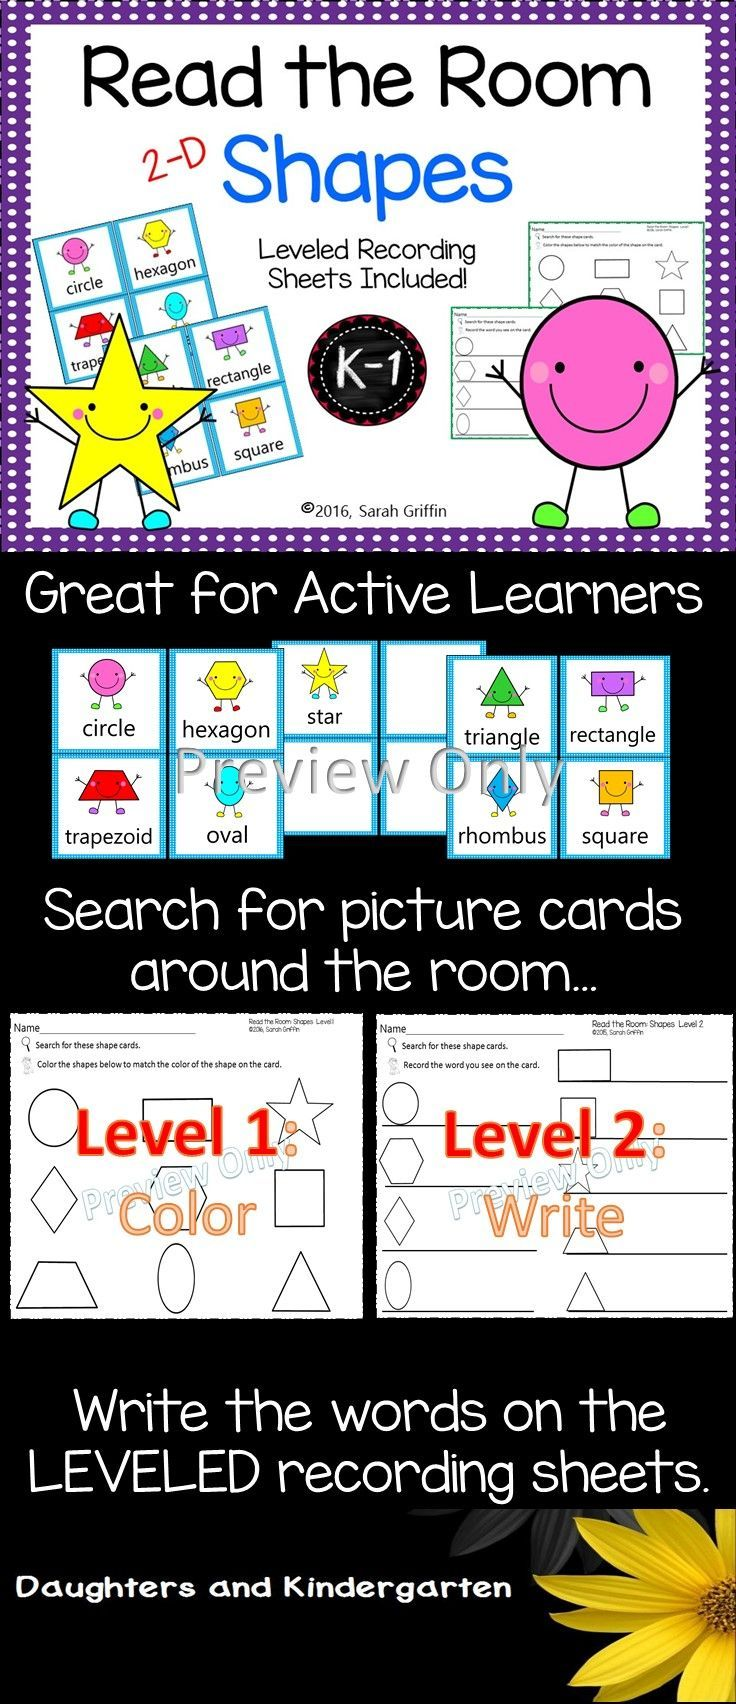 Learn to identify 2-D shapes and shape names with Read and Write the Room. Great interactive math and writing center for #PreK, #kindergarten, and #1st grade. #math . https://www.teacherspayteachers.com/Product/Read-the-Room-Shapes-2061047